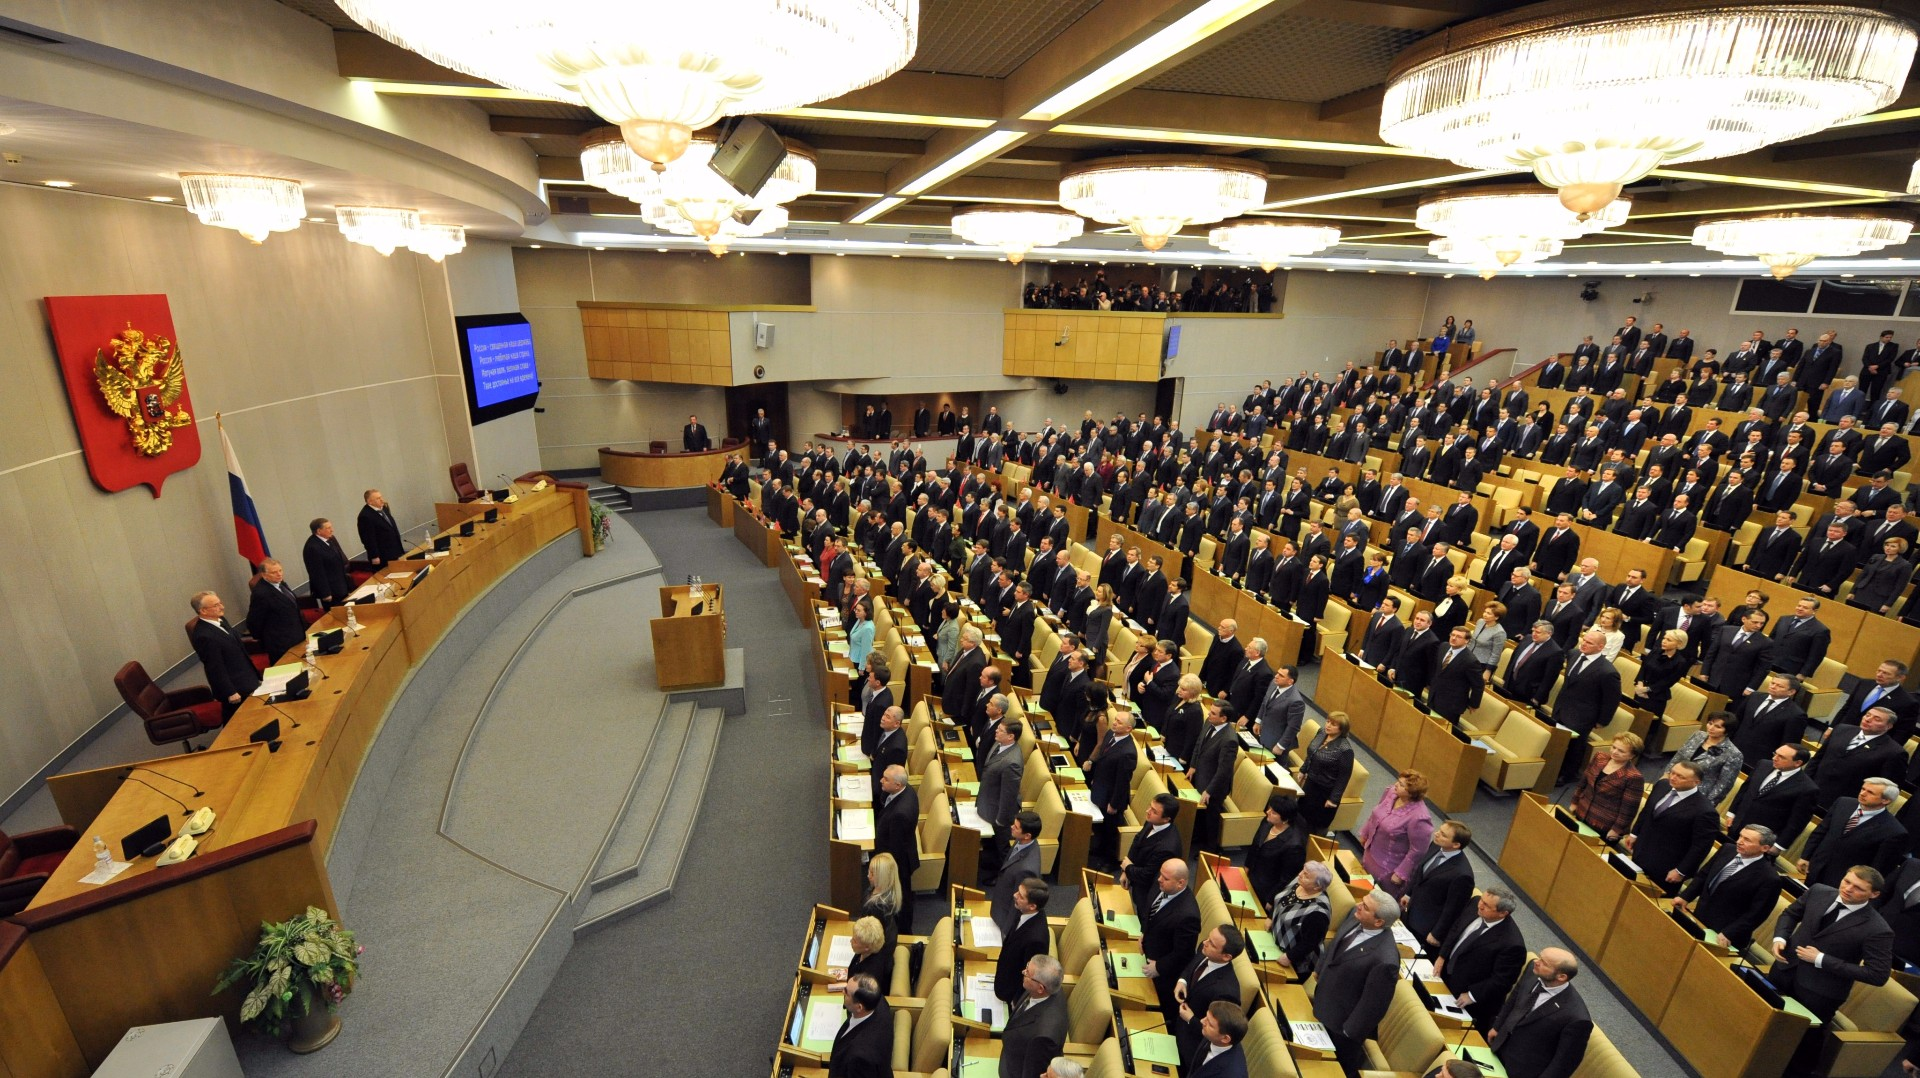 The russian parliament consisted